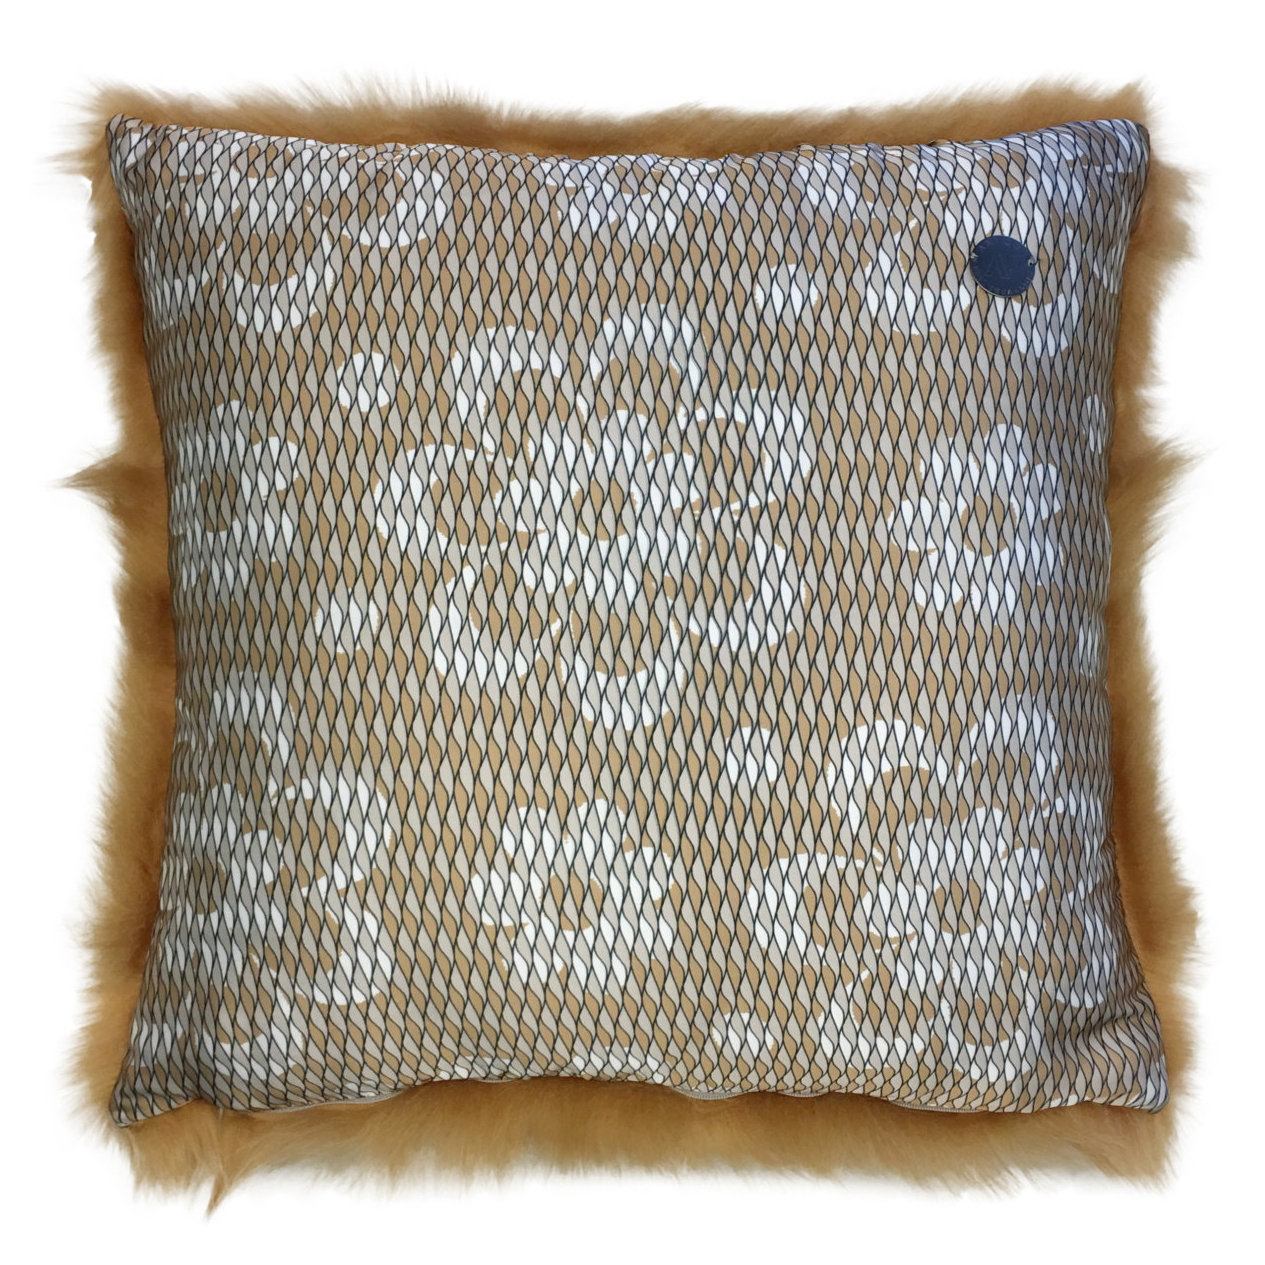 Shearling Pillow-Biscotte-50x50cm-SPBISS2645050-arka - ANVOGG FEEL SHEARLING | ANVOGG